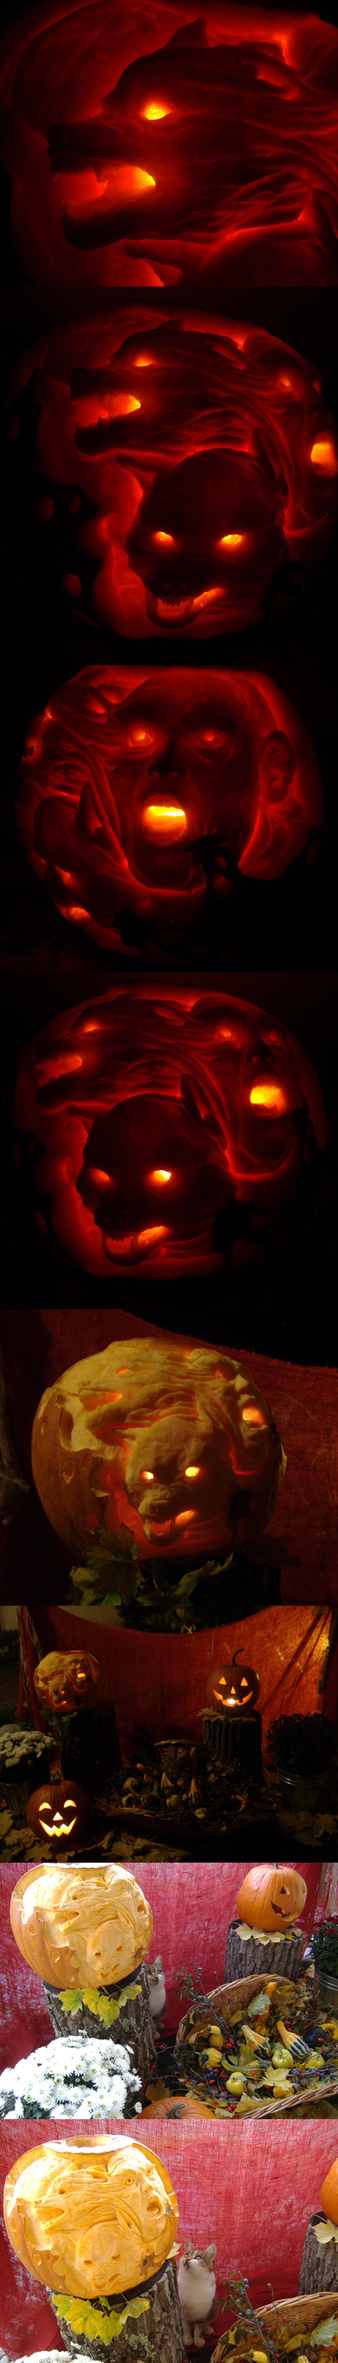 Pumpkin carving - doodling by betti357